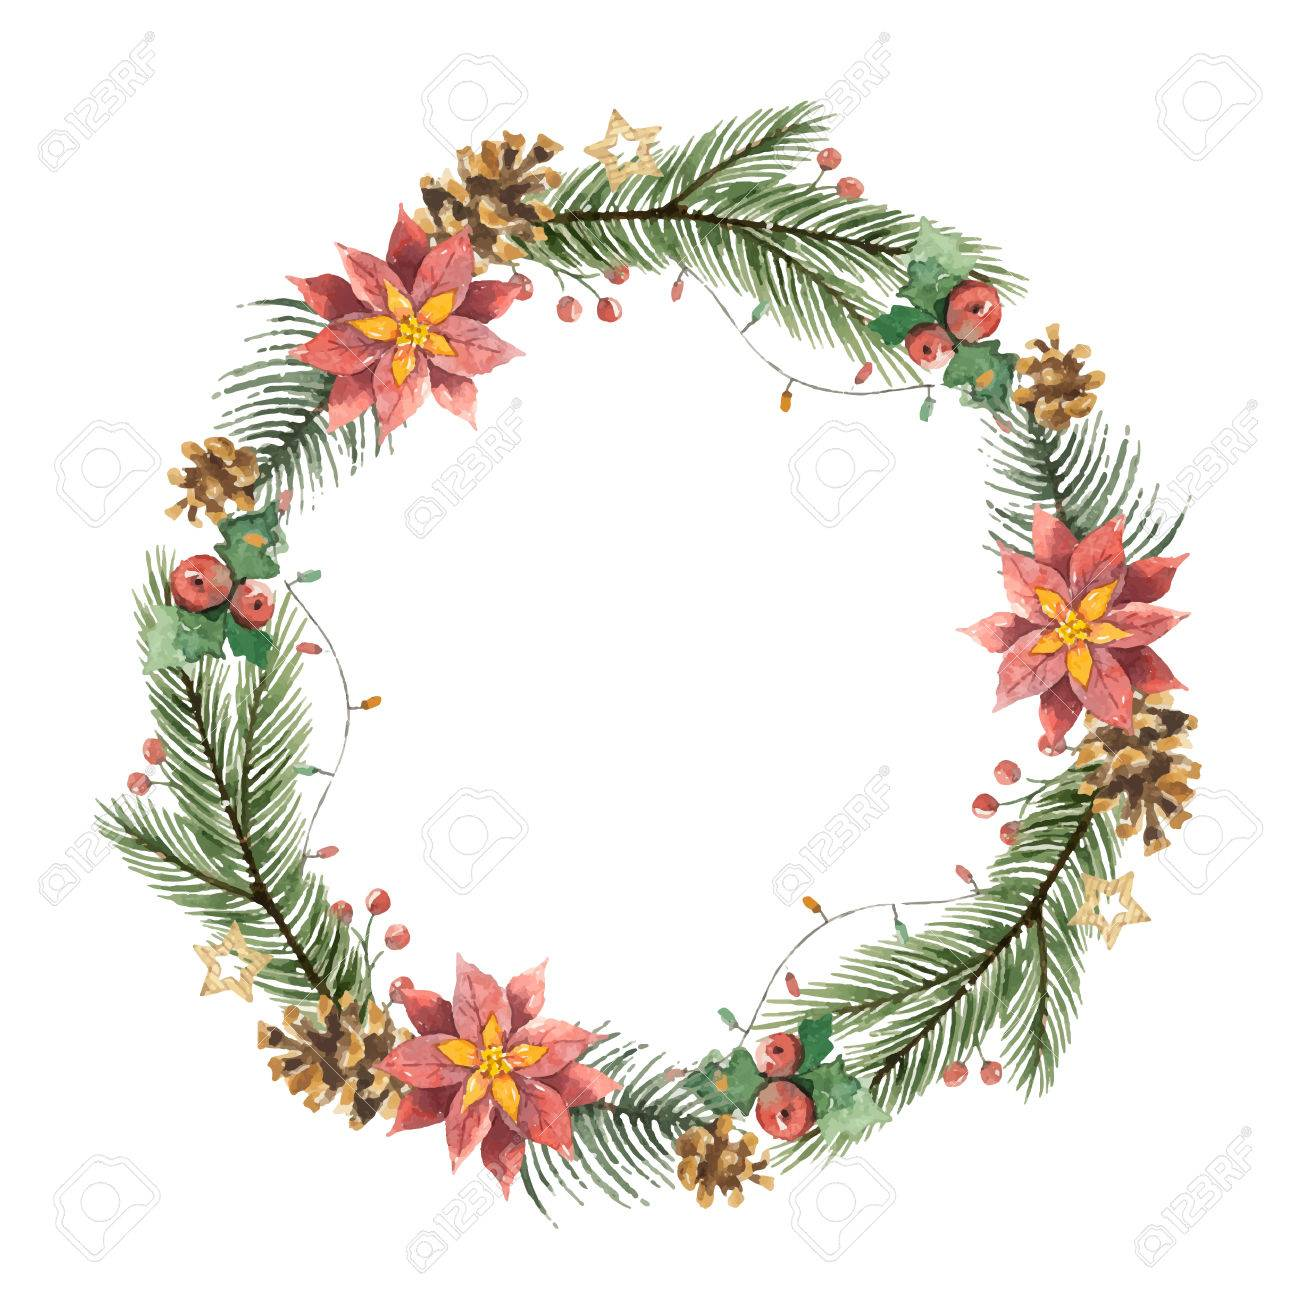 Watercolor Christmas Wreath With Bell Illustration Royalty Free